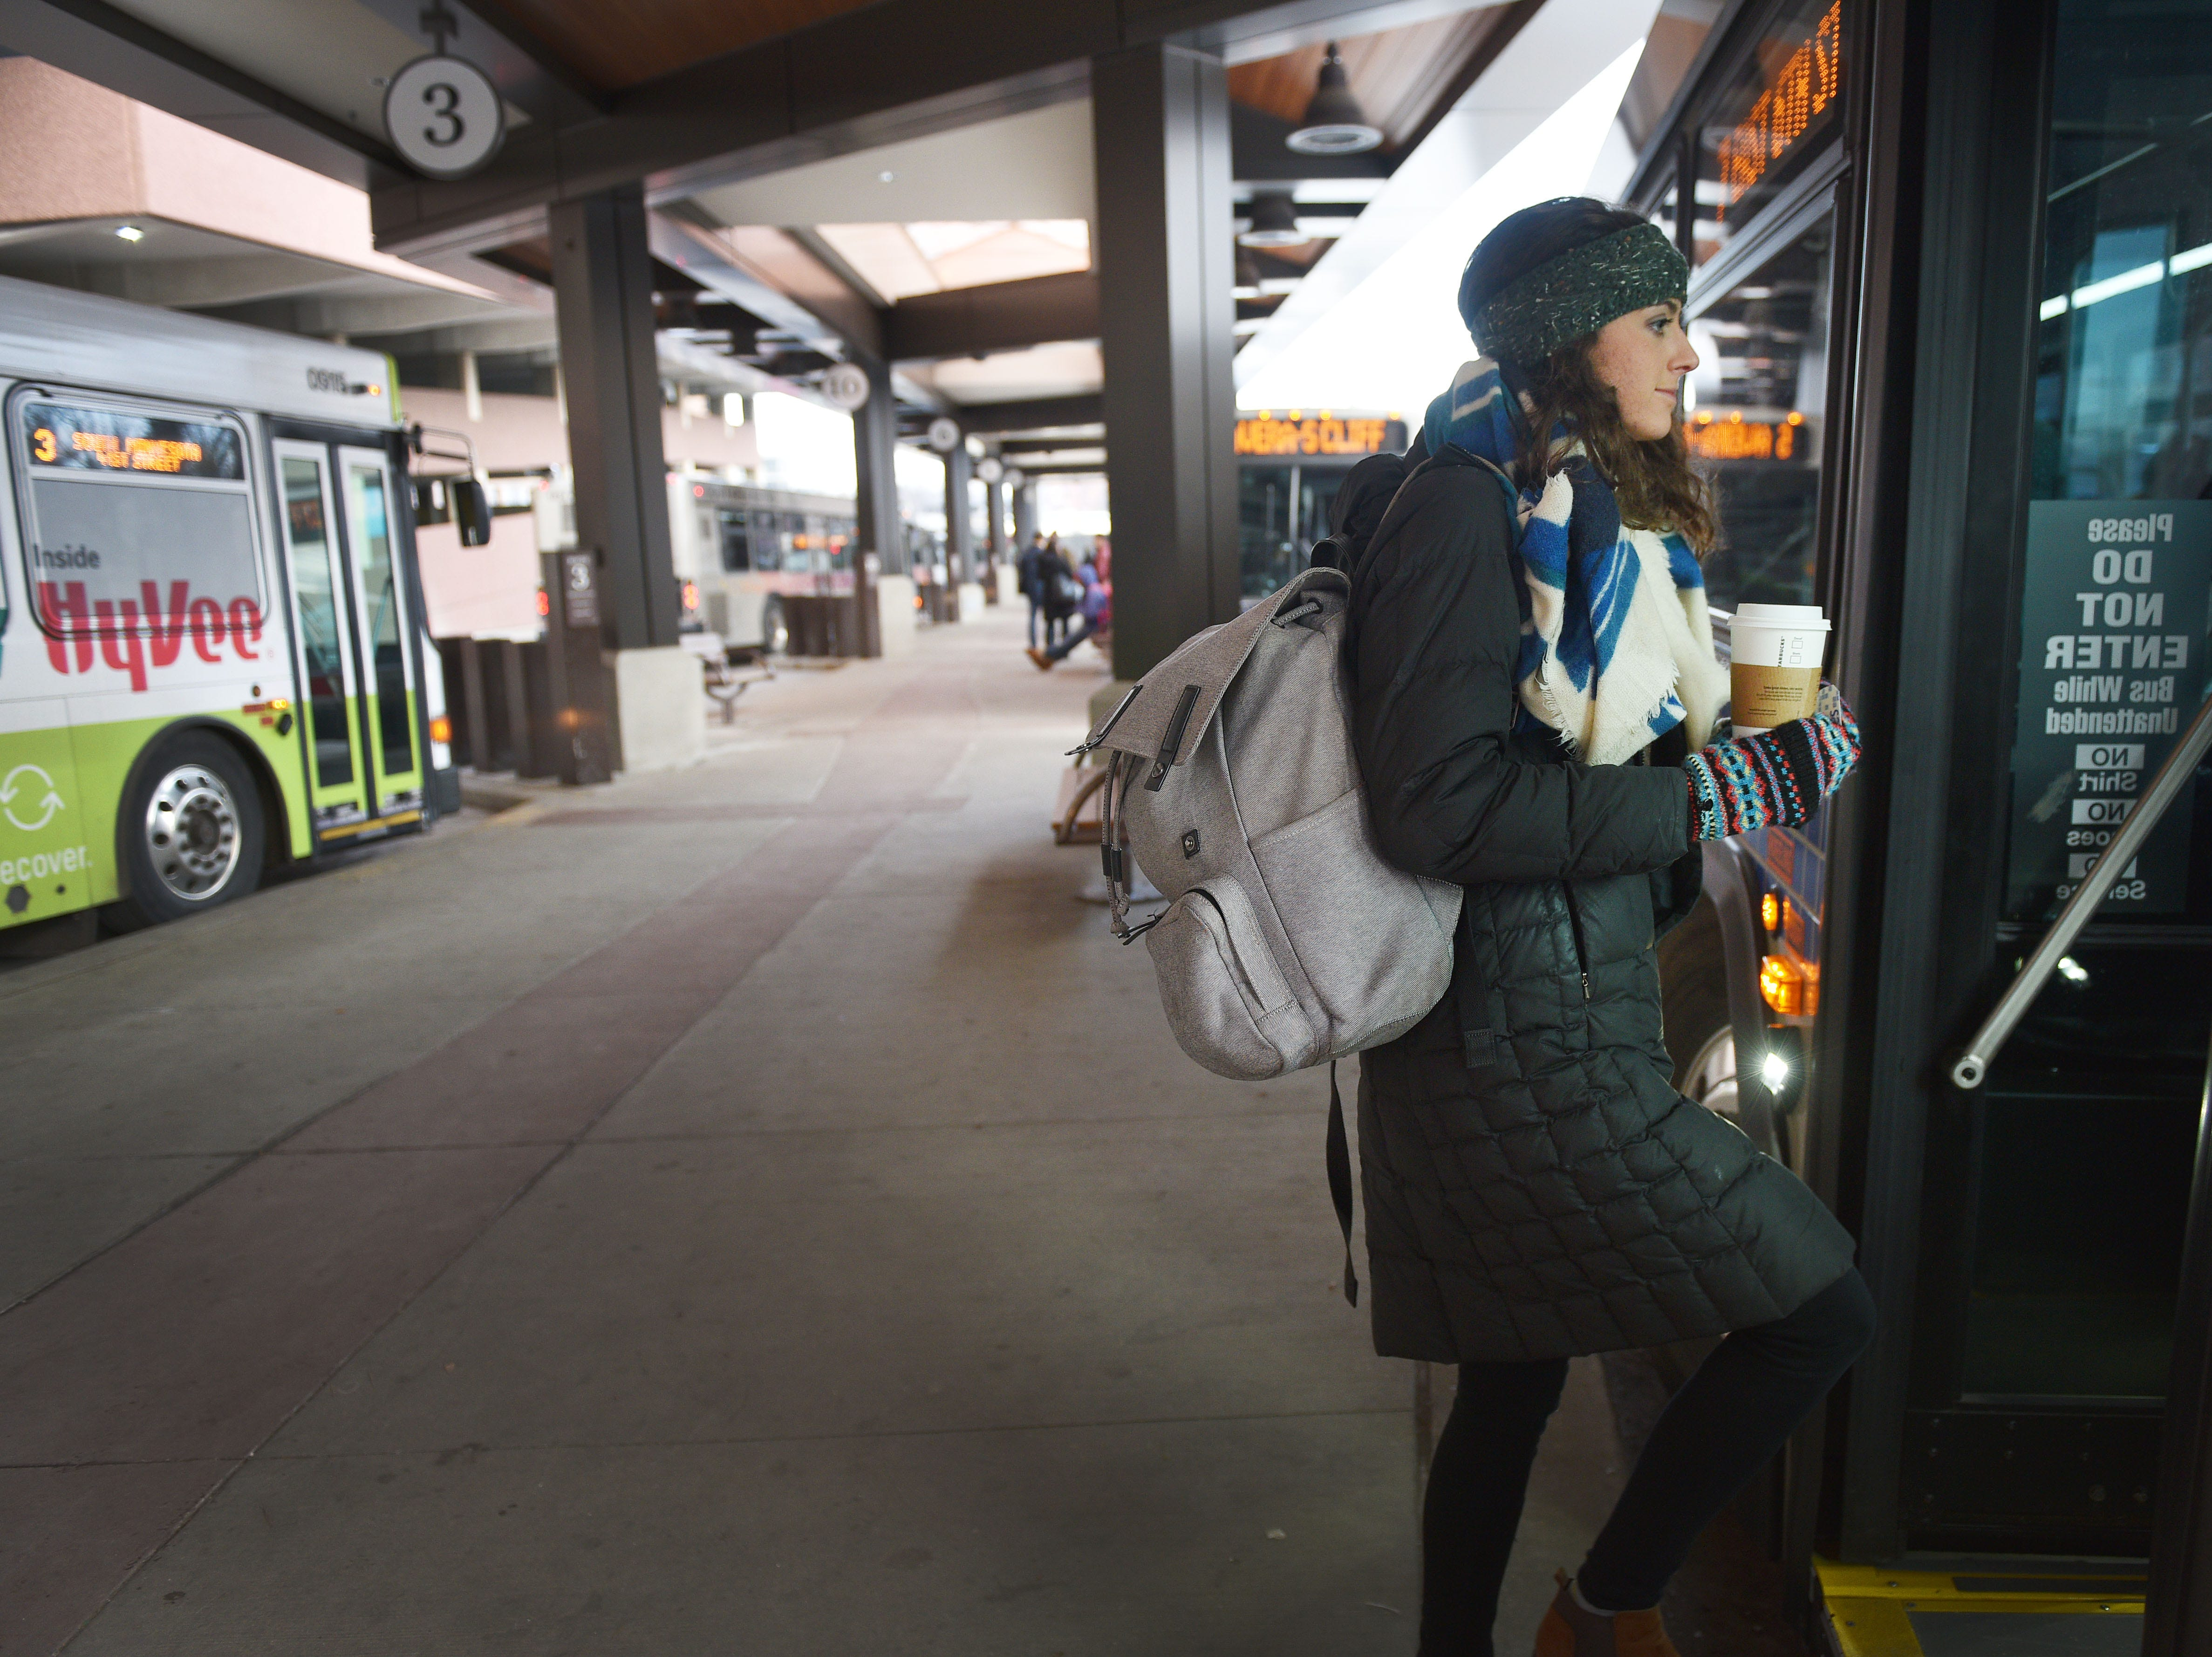 Program Associate at Centre for Public Impact Paige Mcdermott gets on a city bus Friday, Dec. 7, in Sioux Falls. Public transit costs taxpayers millions each year. That's why a task force has been set up to study the issue with assistance from staff at the Harvard Bloomberg Institute. A part of the task force's work is engaging bus riders and the general public, so members were at the bus depot at 9 a.m. Friday to talk to riders and ride the buses.